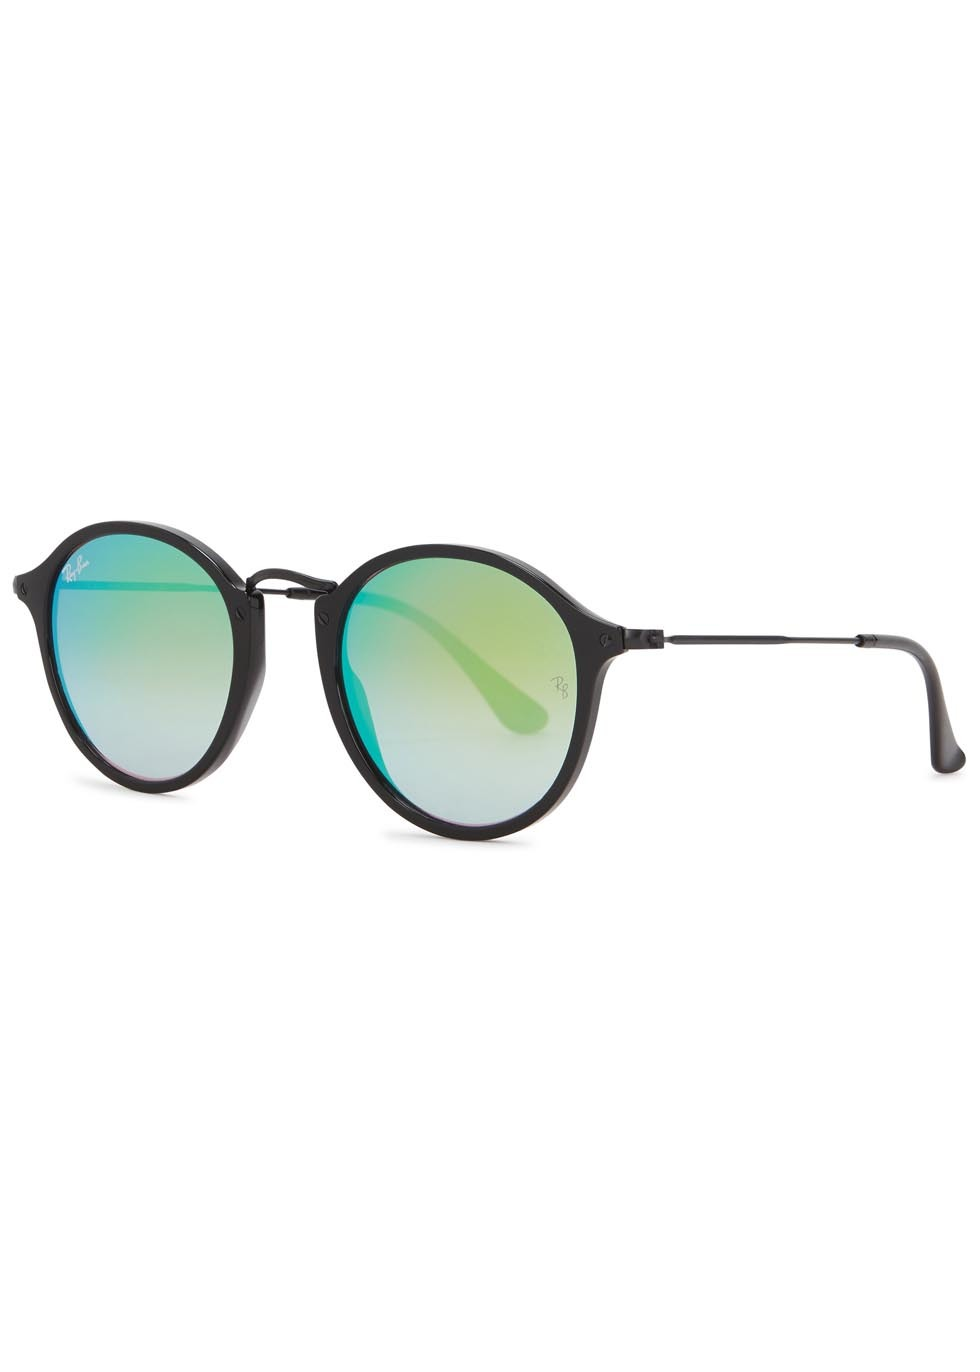 Black Mirrored Round Frame Sunglasses - predominant colour: black; occasions: casual, holiday; style: d frame; size: standard; material: plastic/rubber; pattern: plain; finish: plain; season: s/s 2016; wardrobe: basic